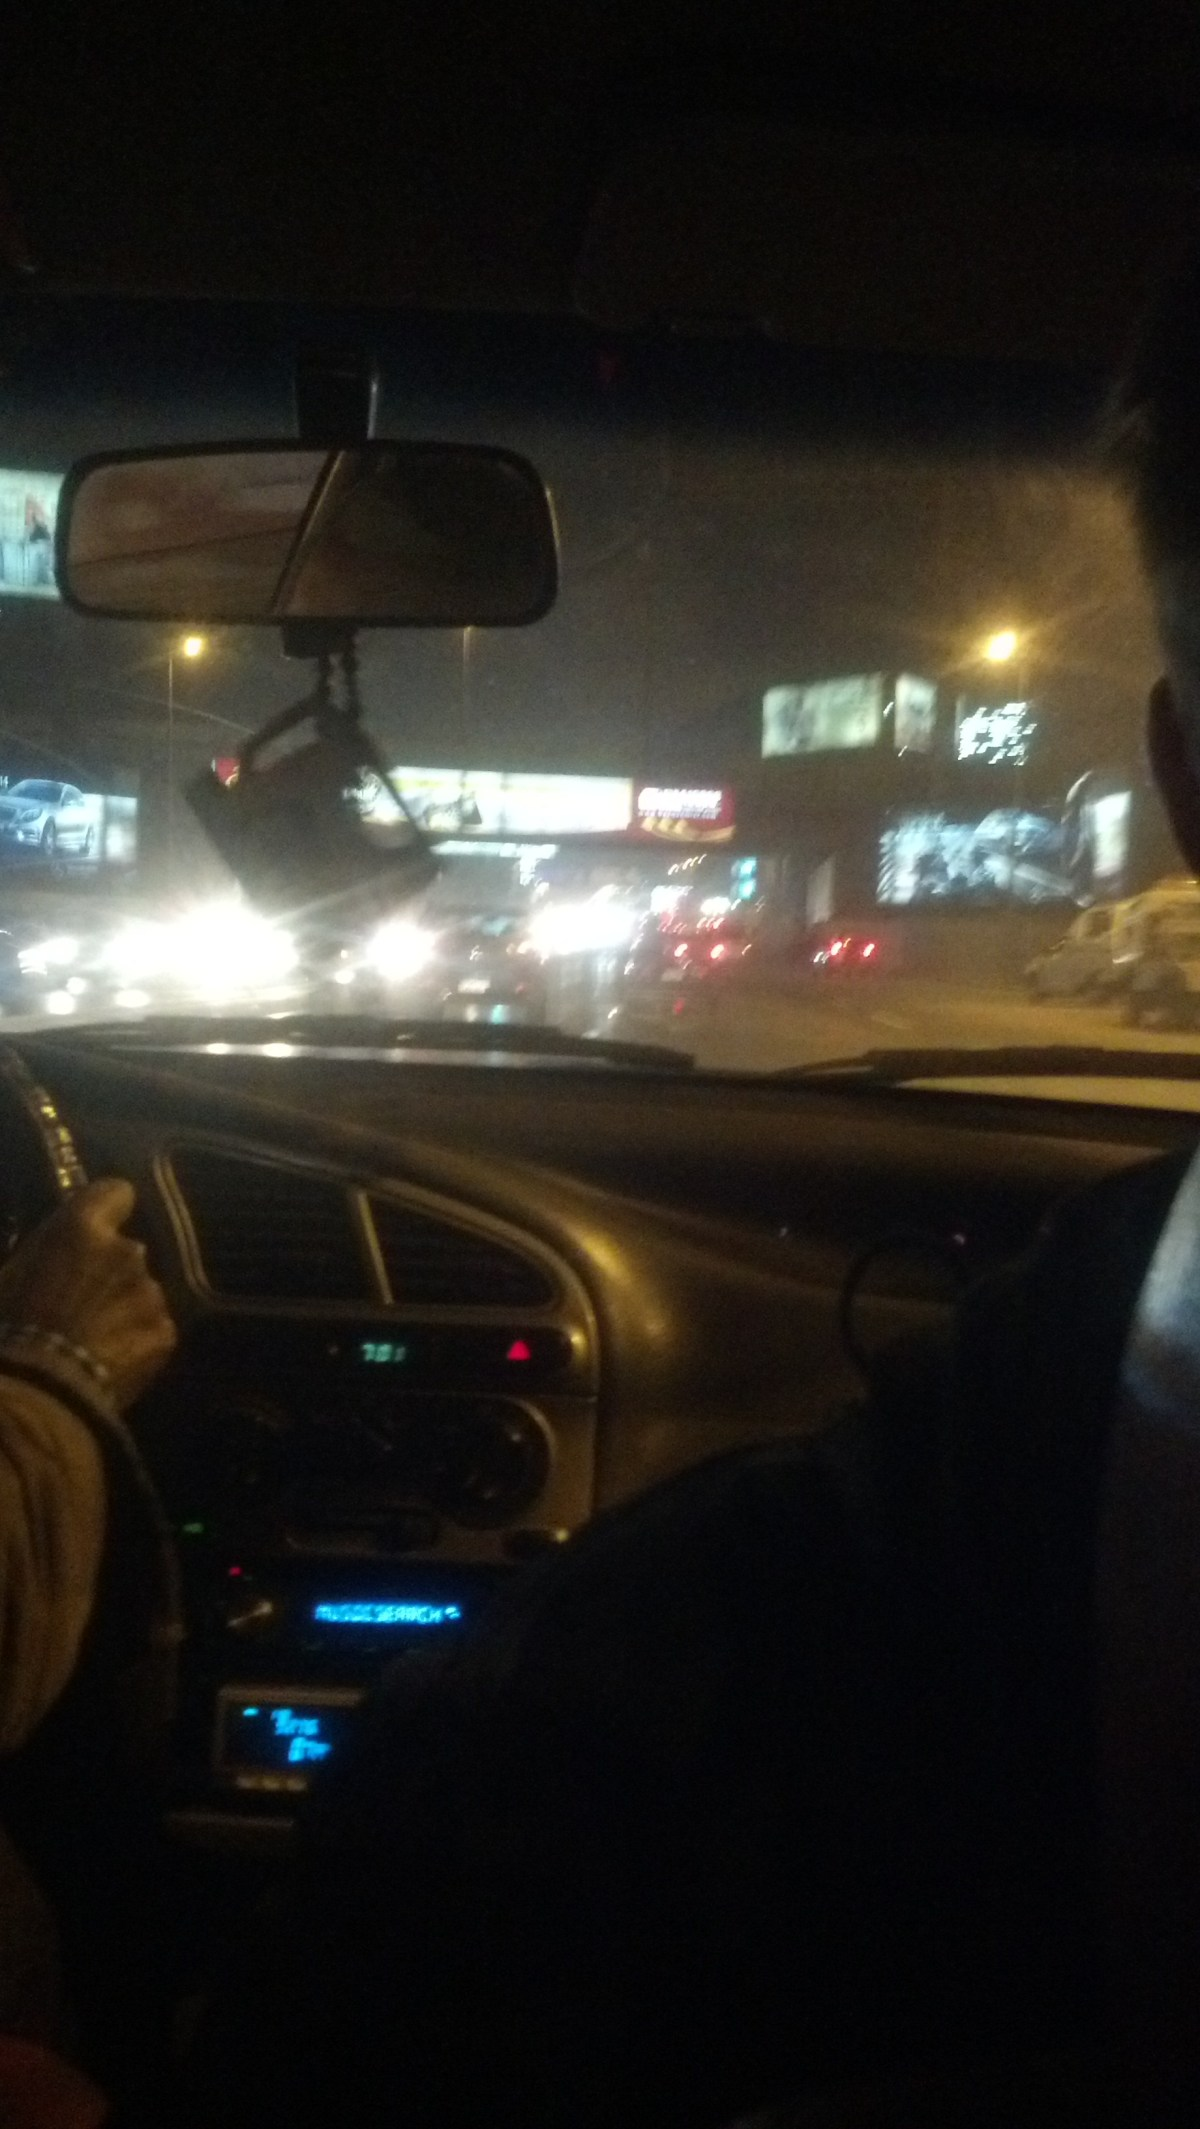 Egypt Tourism: Taxi Ride in Cairo at Night